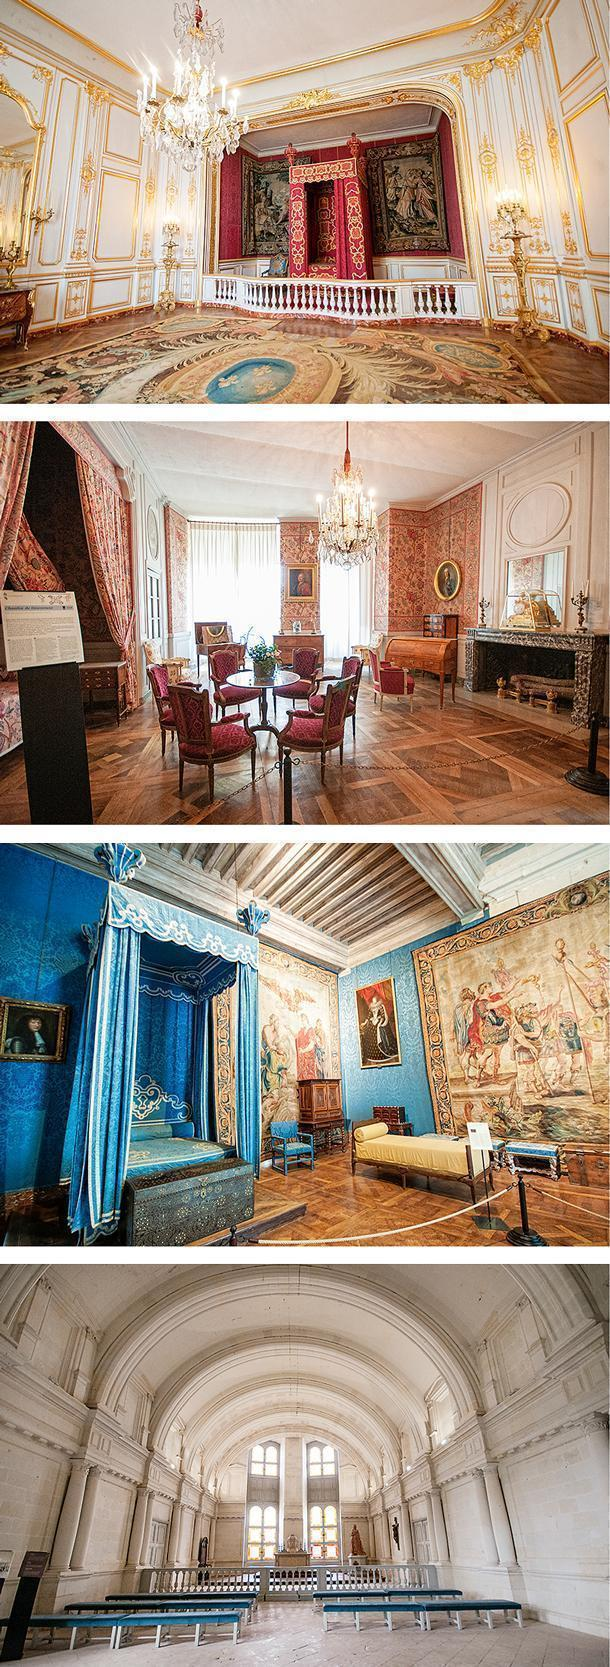 The rooms are furnished to reflect the opulence of the chateaux of the period.